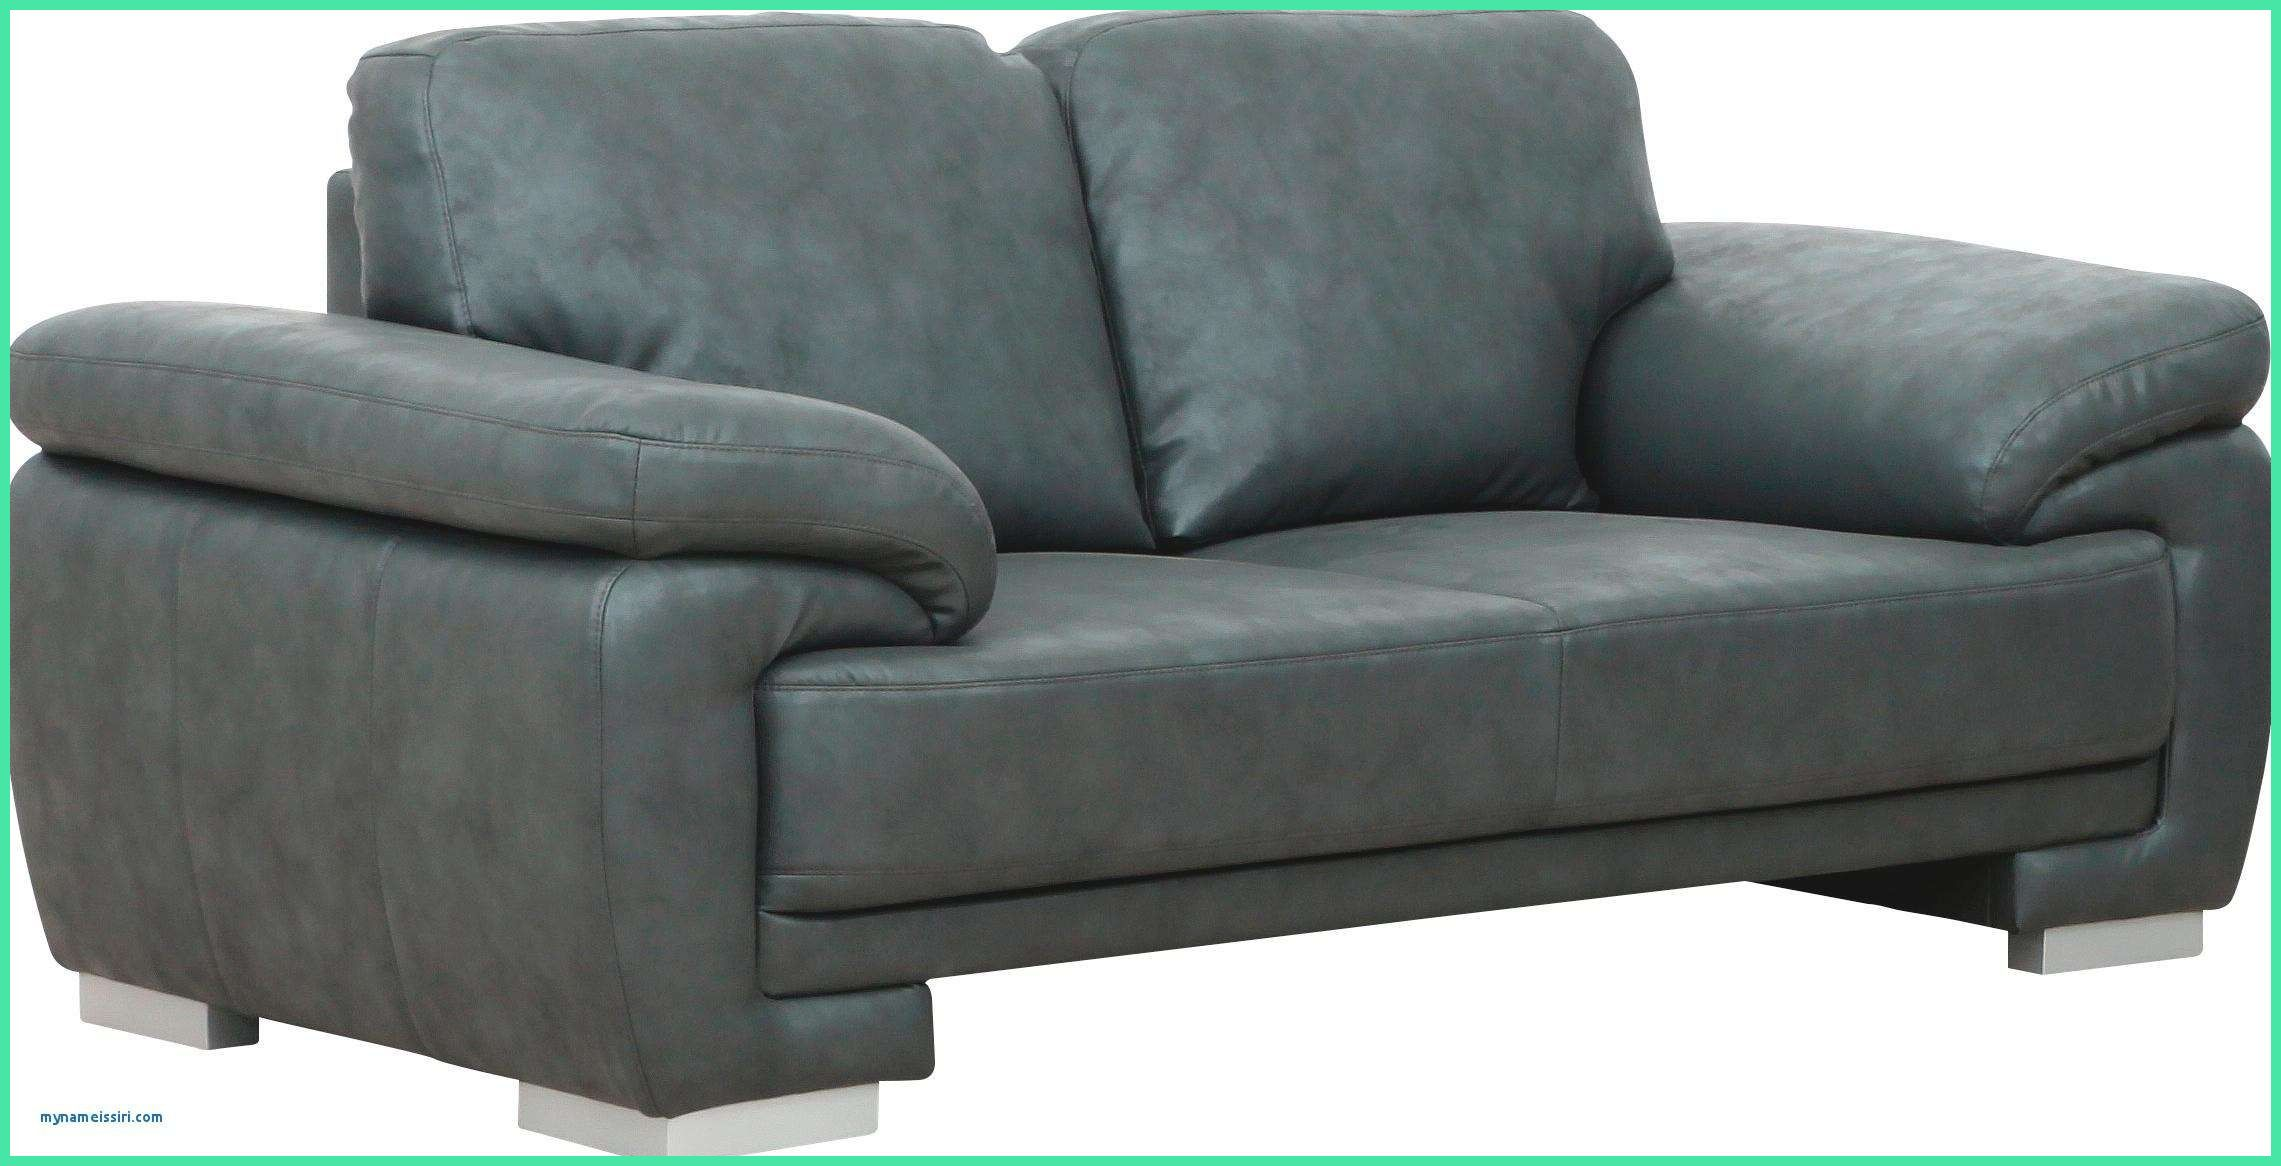 13 Einfach Ostermann Couch Couch Sofa Couch Sofa